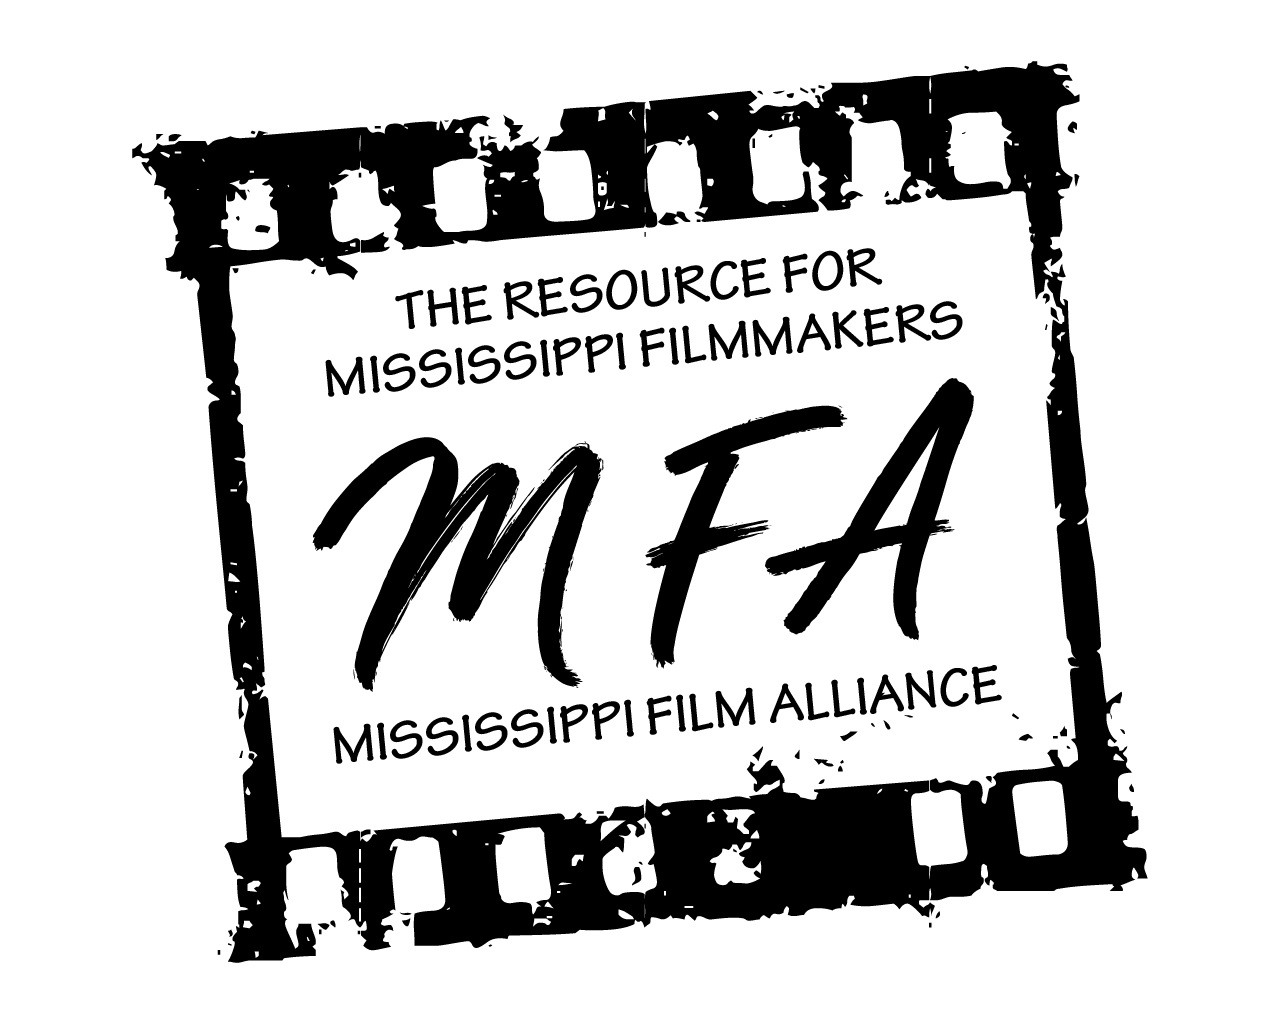 Mississippi Film Alliance